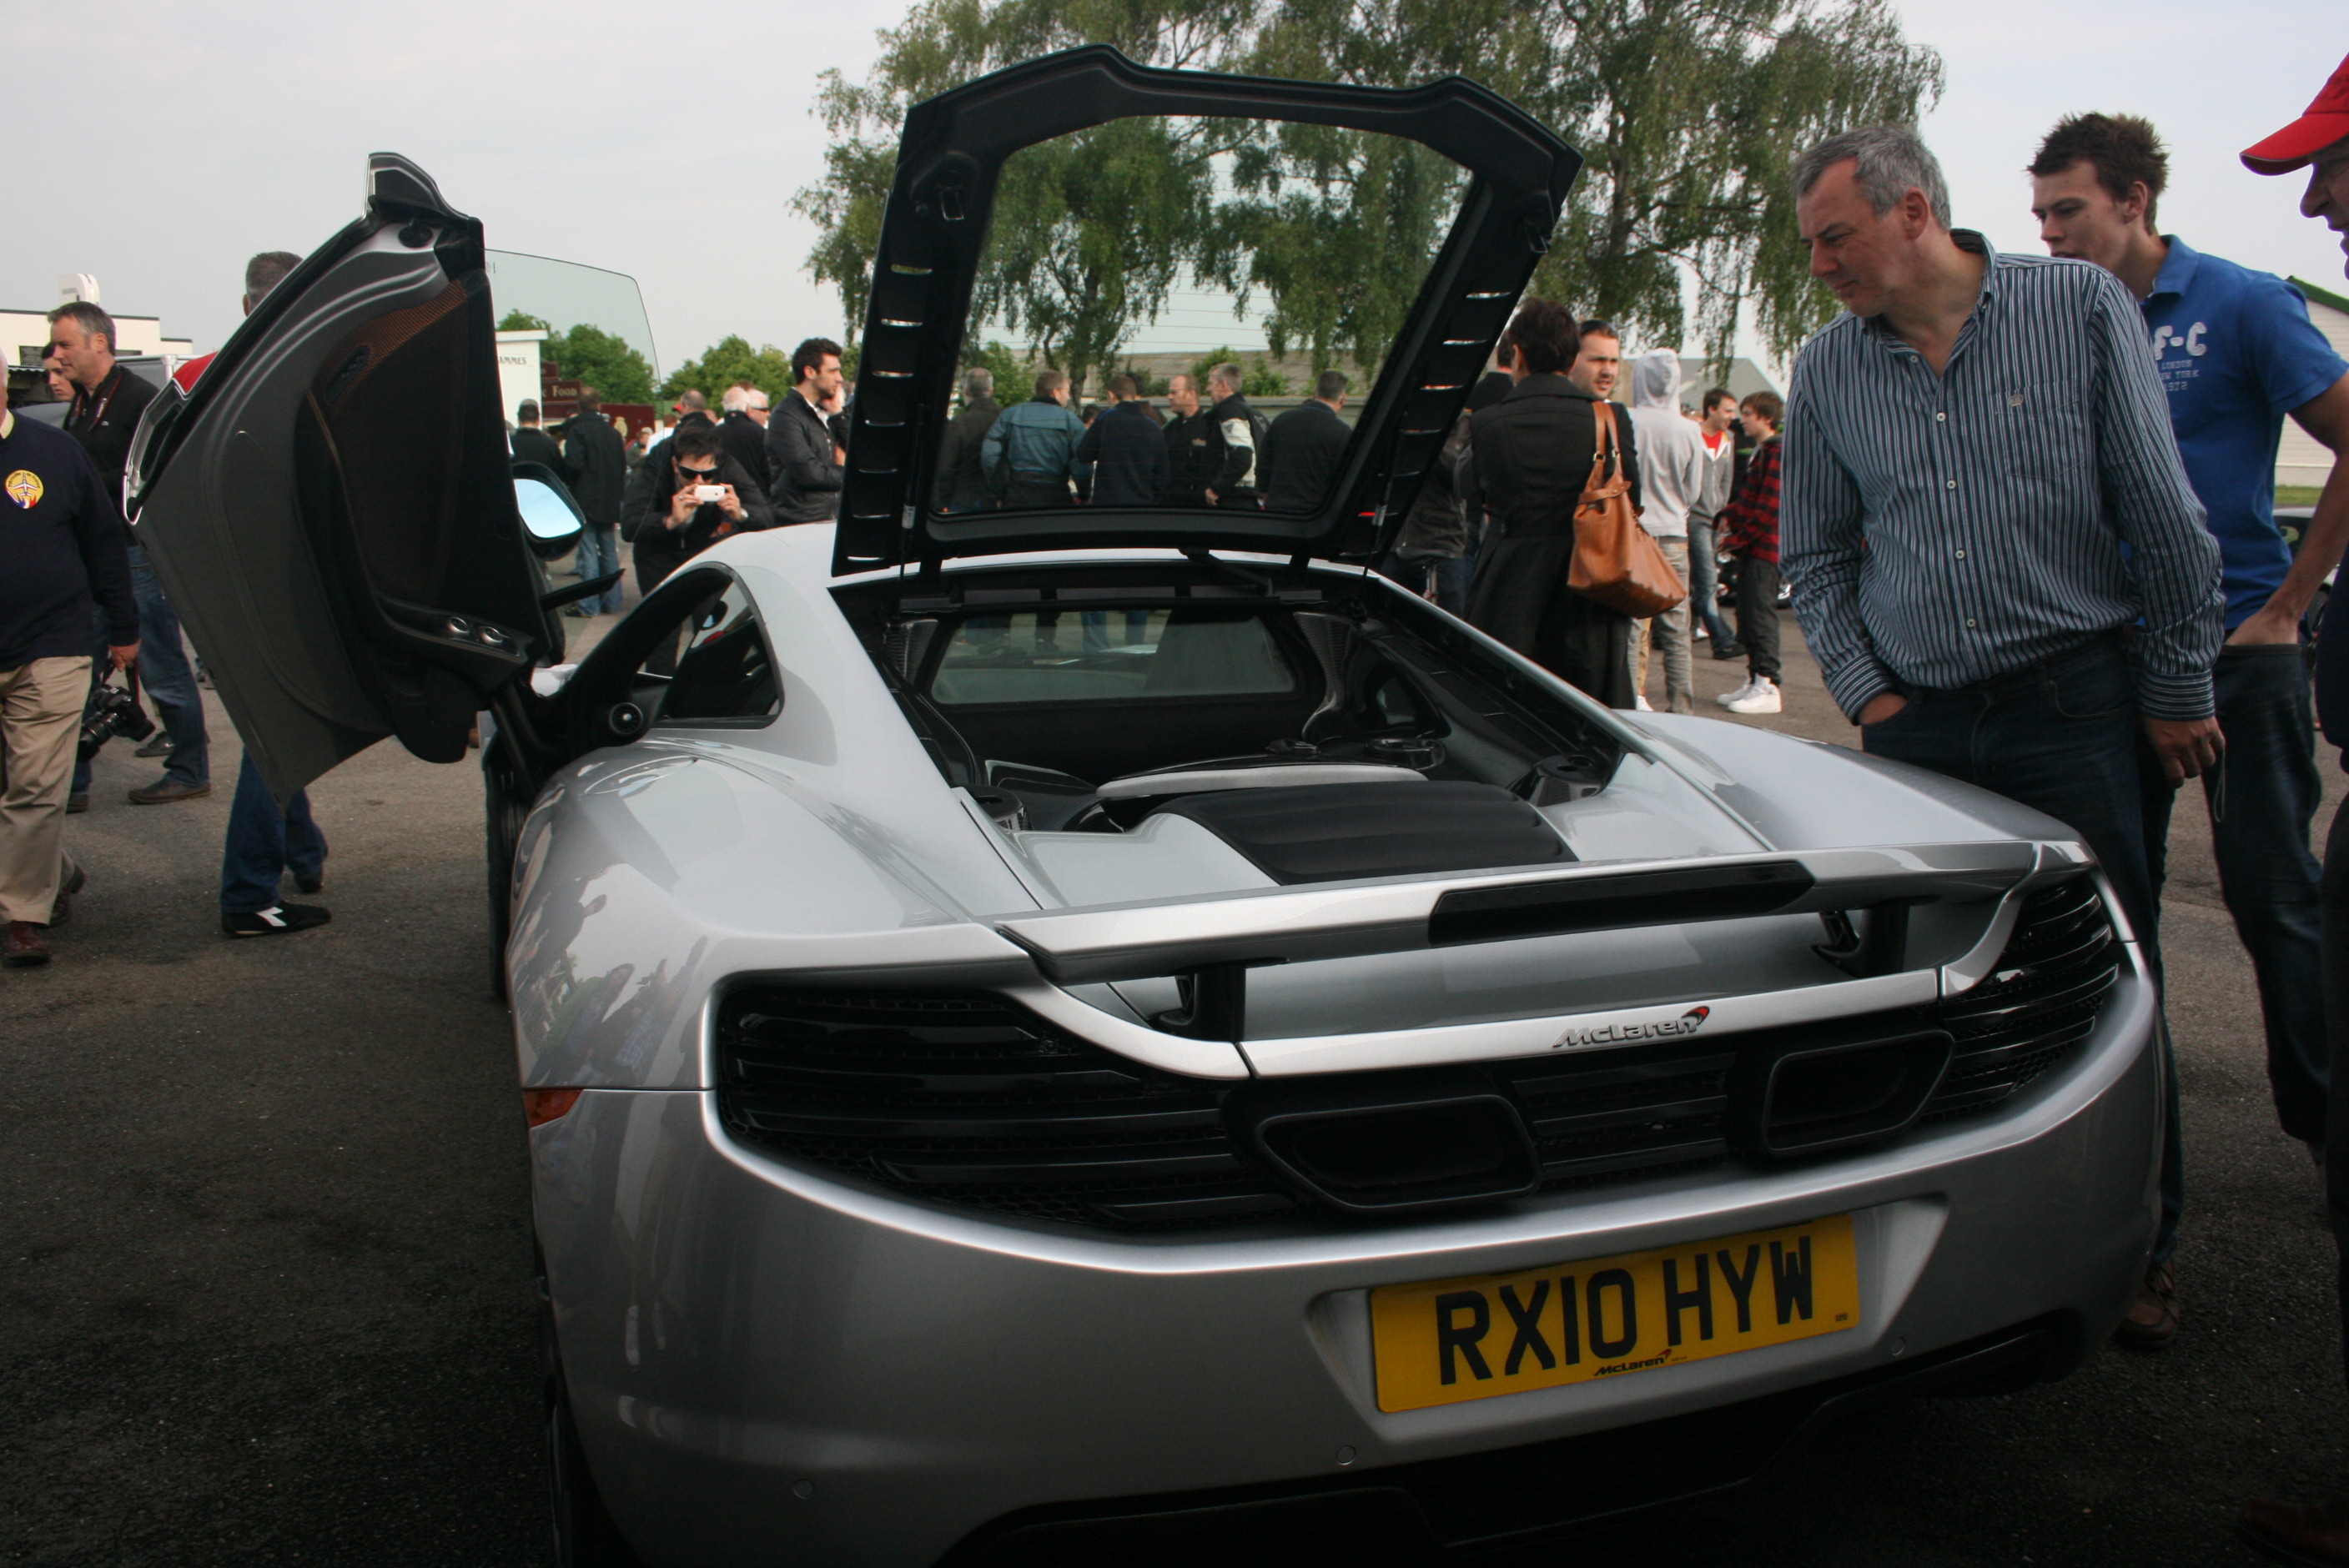 https://upload.wikimedia.org/wikipedia/commons/9/9d/McLaren_MP4-12C_rear.jpg